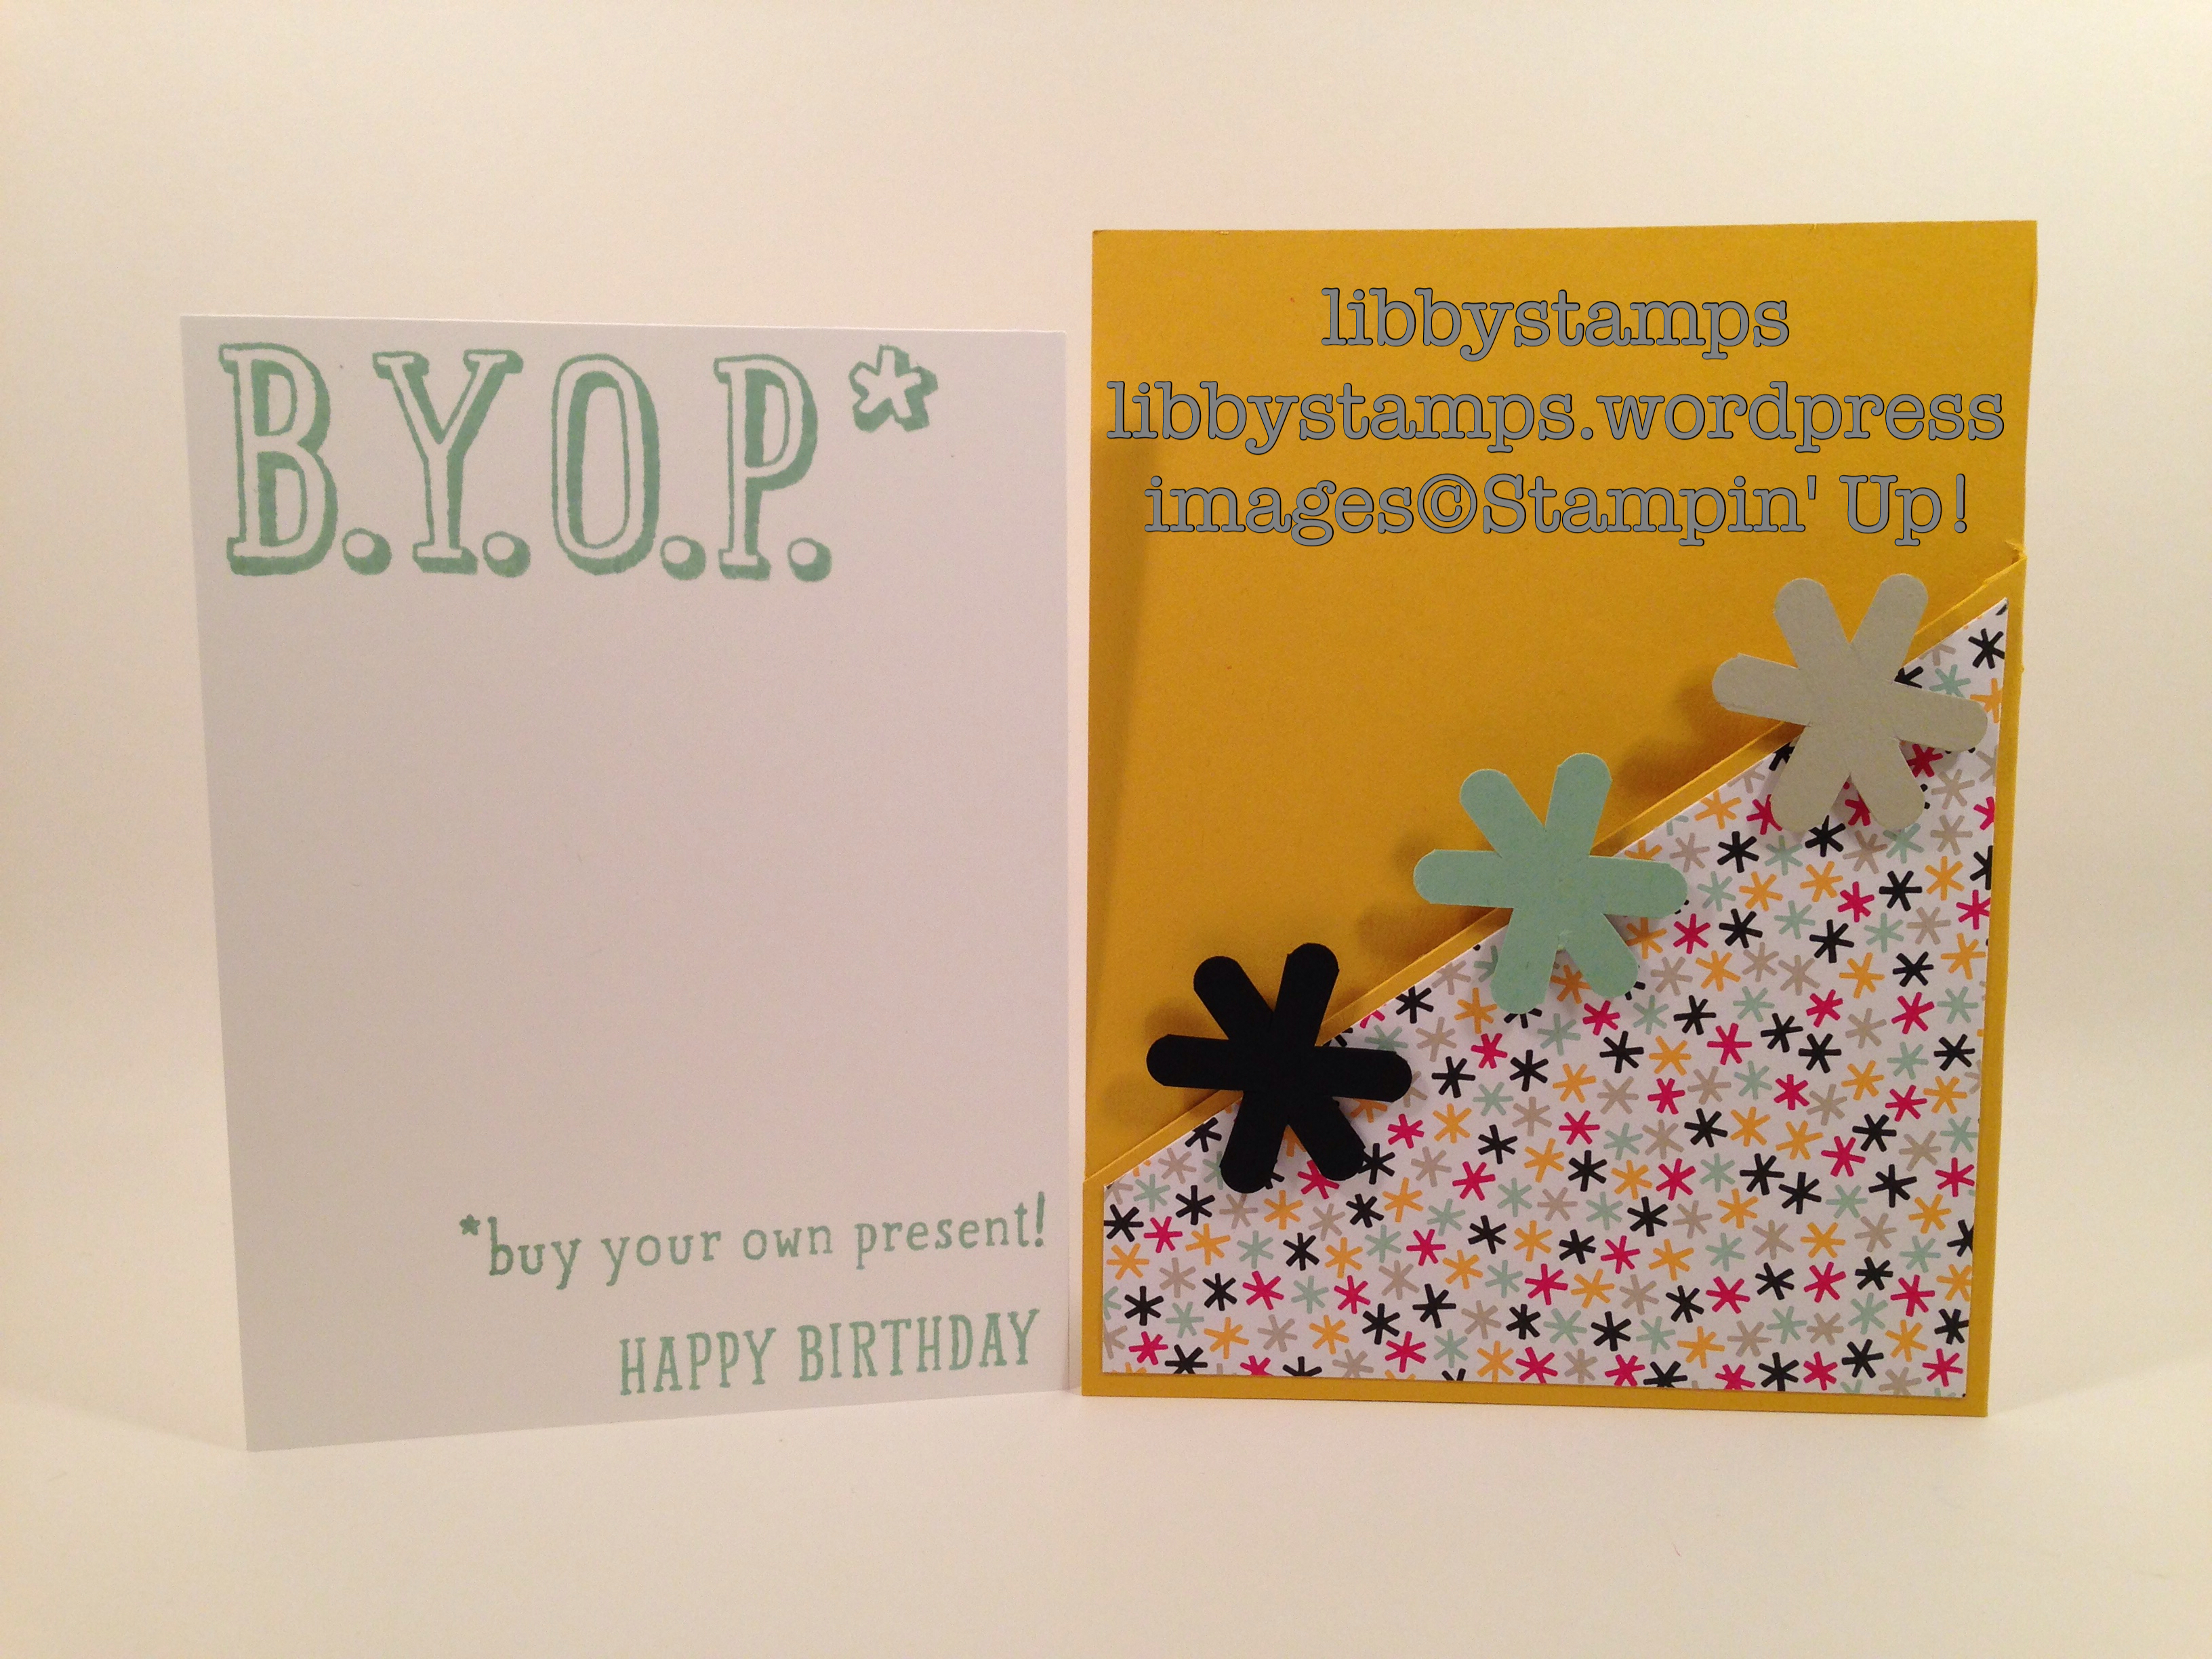 libbystamps, stampin' up, B.Y.O.P., It's My Party DSP, 1 1/4 Scallop Circle Punch, pocket card, CYCI#114